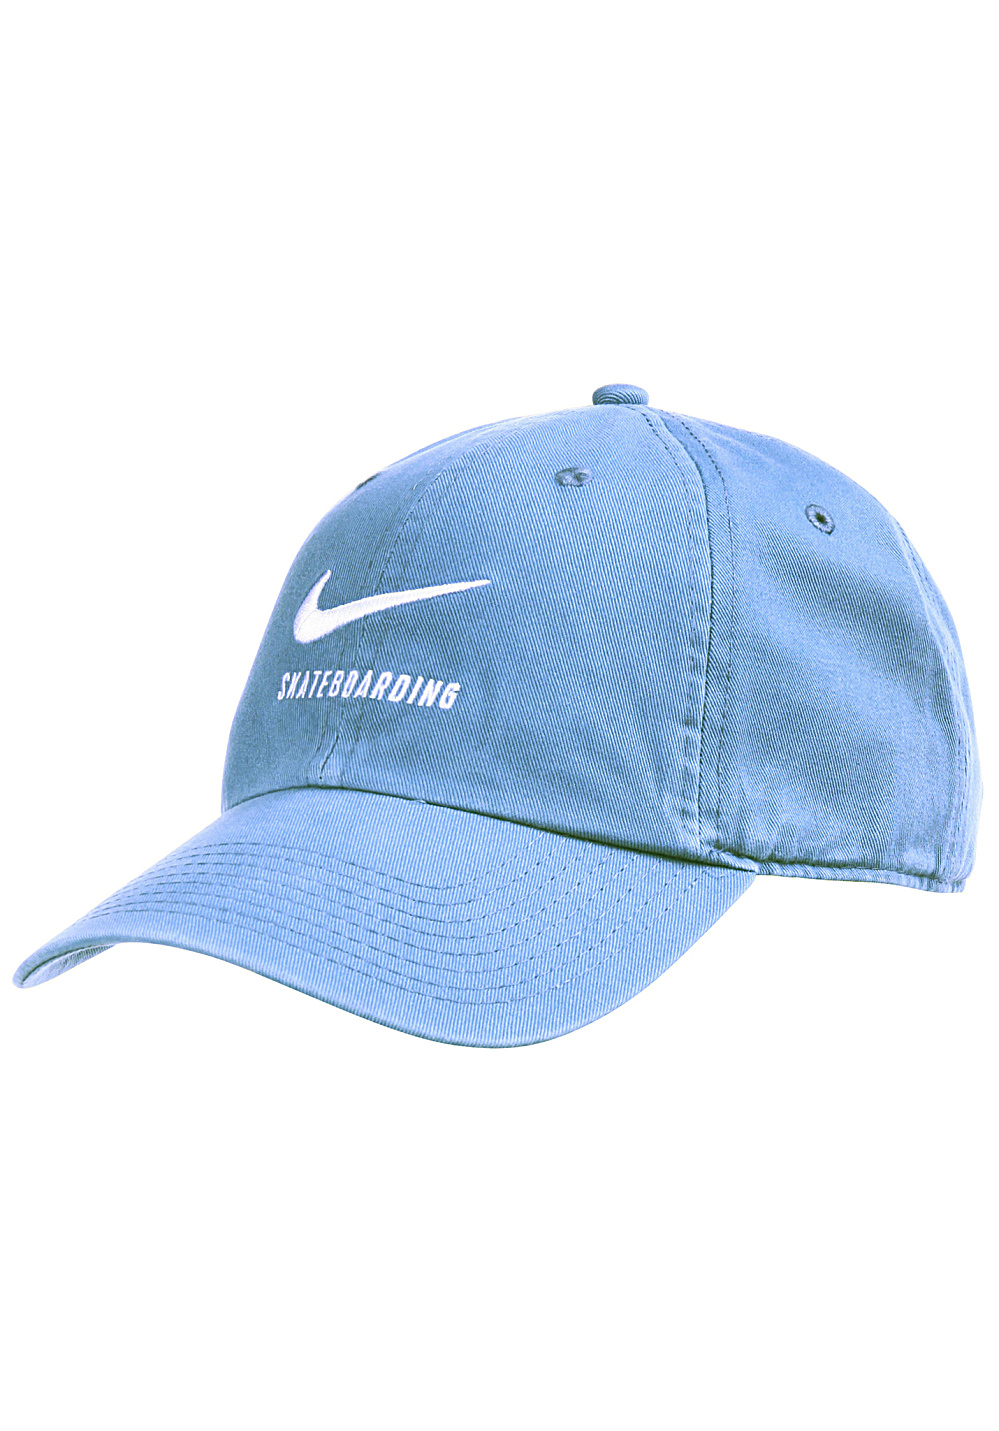 NIKE SB H86 Twill - Gorra - Azul - Planet Sports 237aa8c9ce3